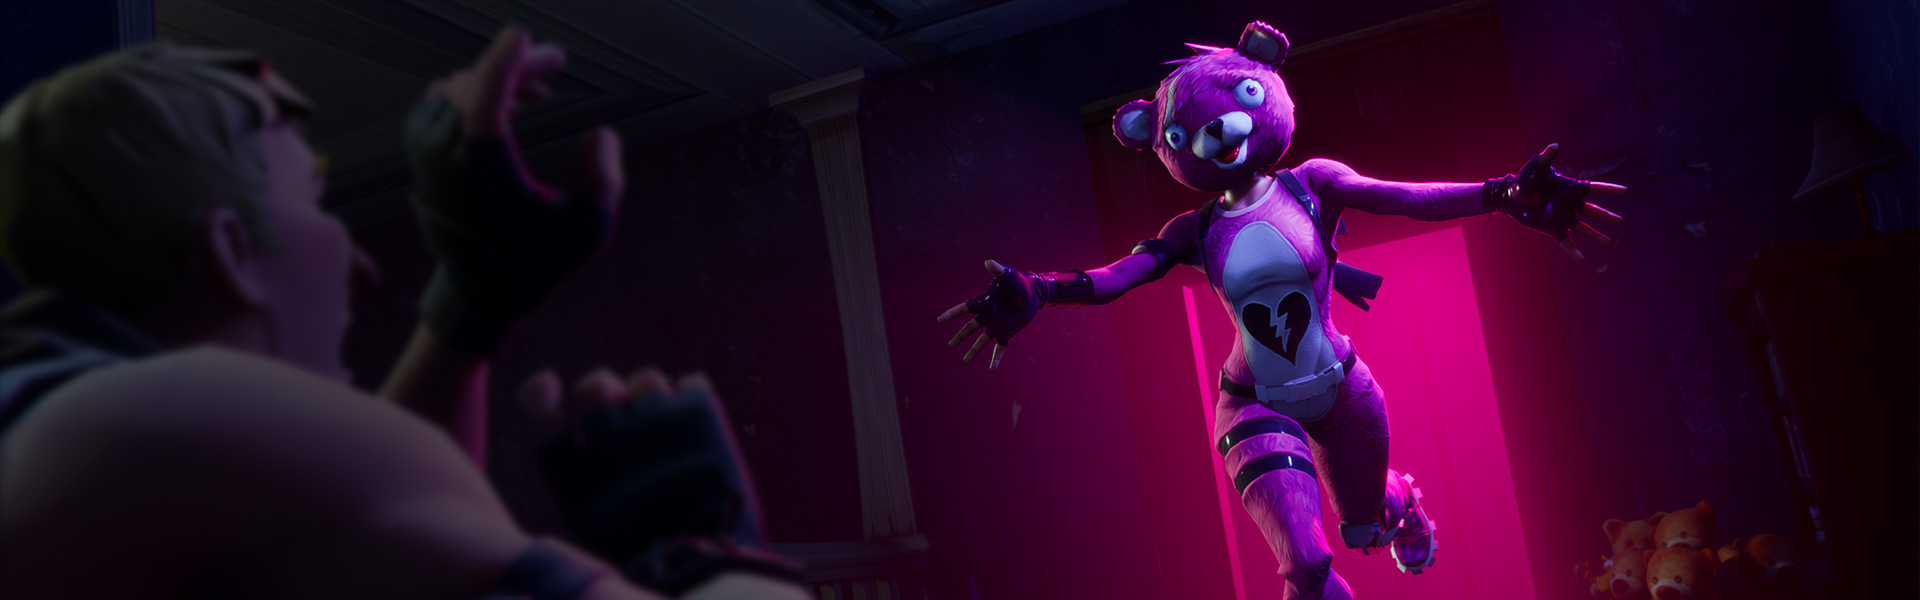 A person in a pink teddy bear costume runs toward a scared male character